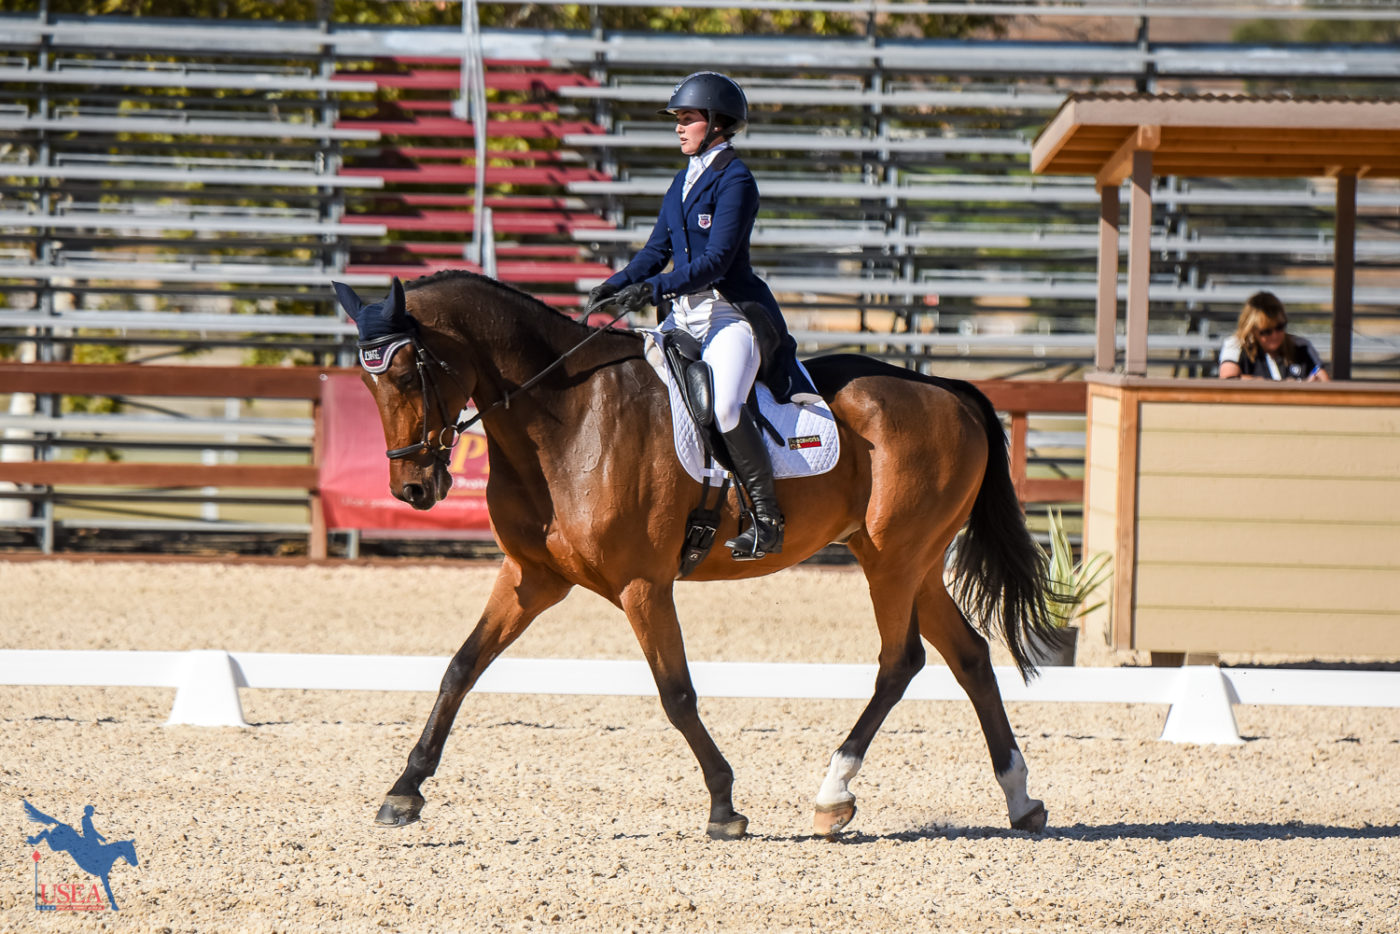 CCI3*-L 8th - Kaitlin Vosseller and Clear Approval - 36.8